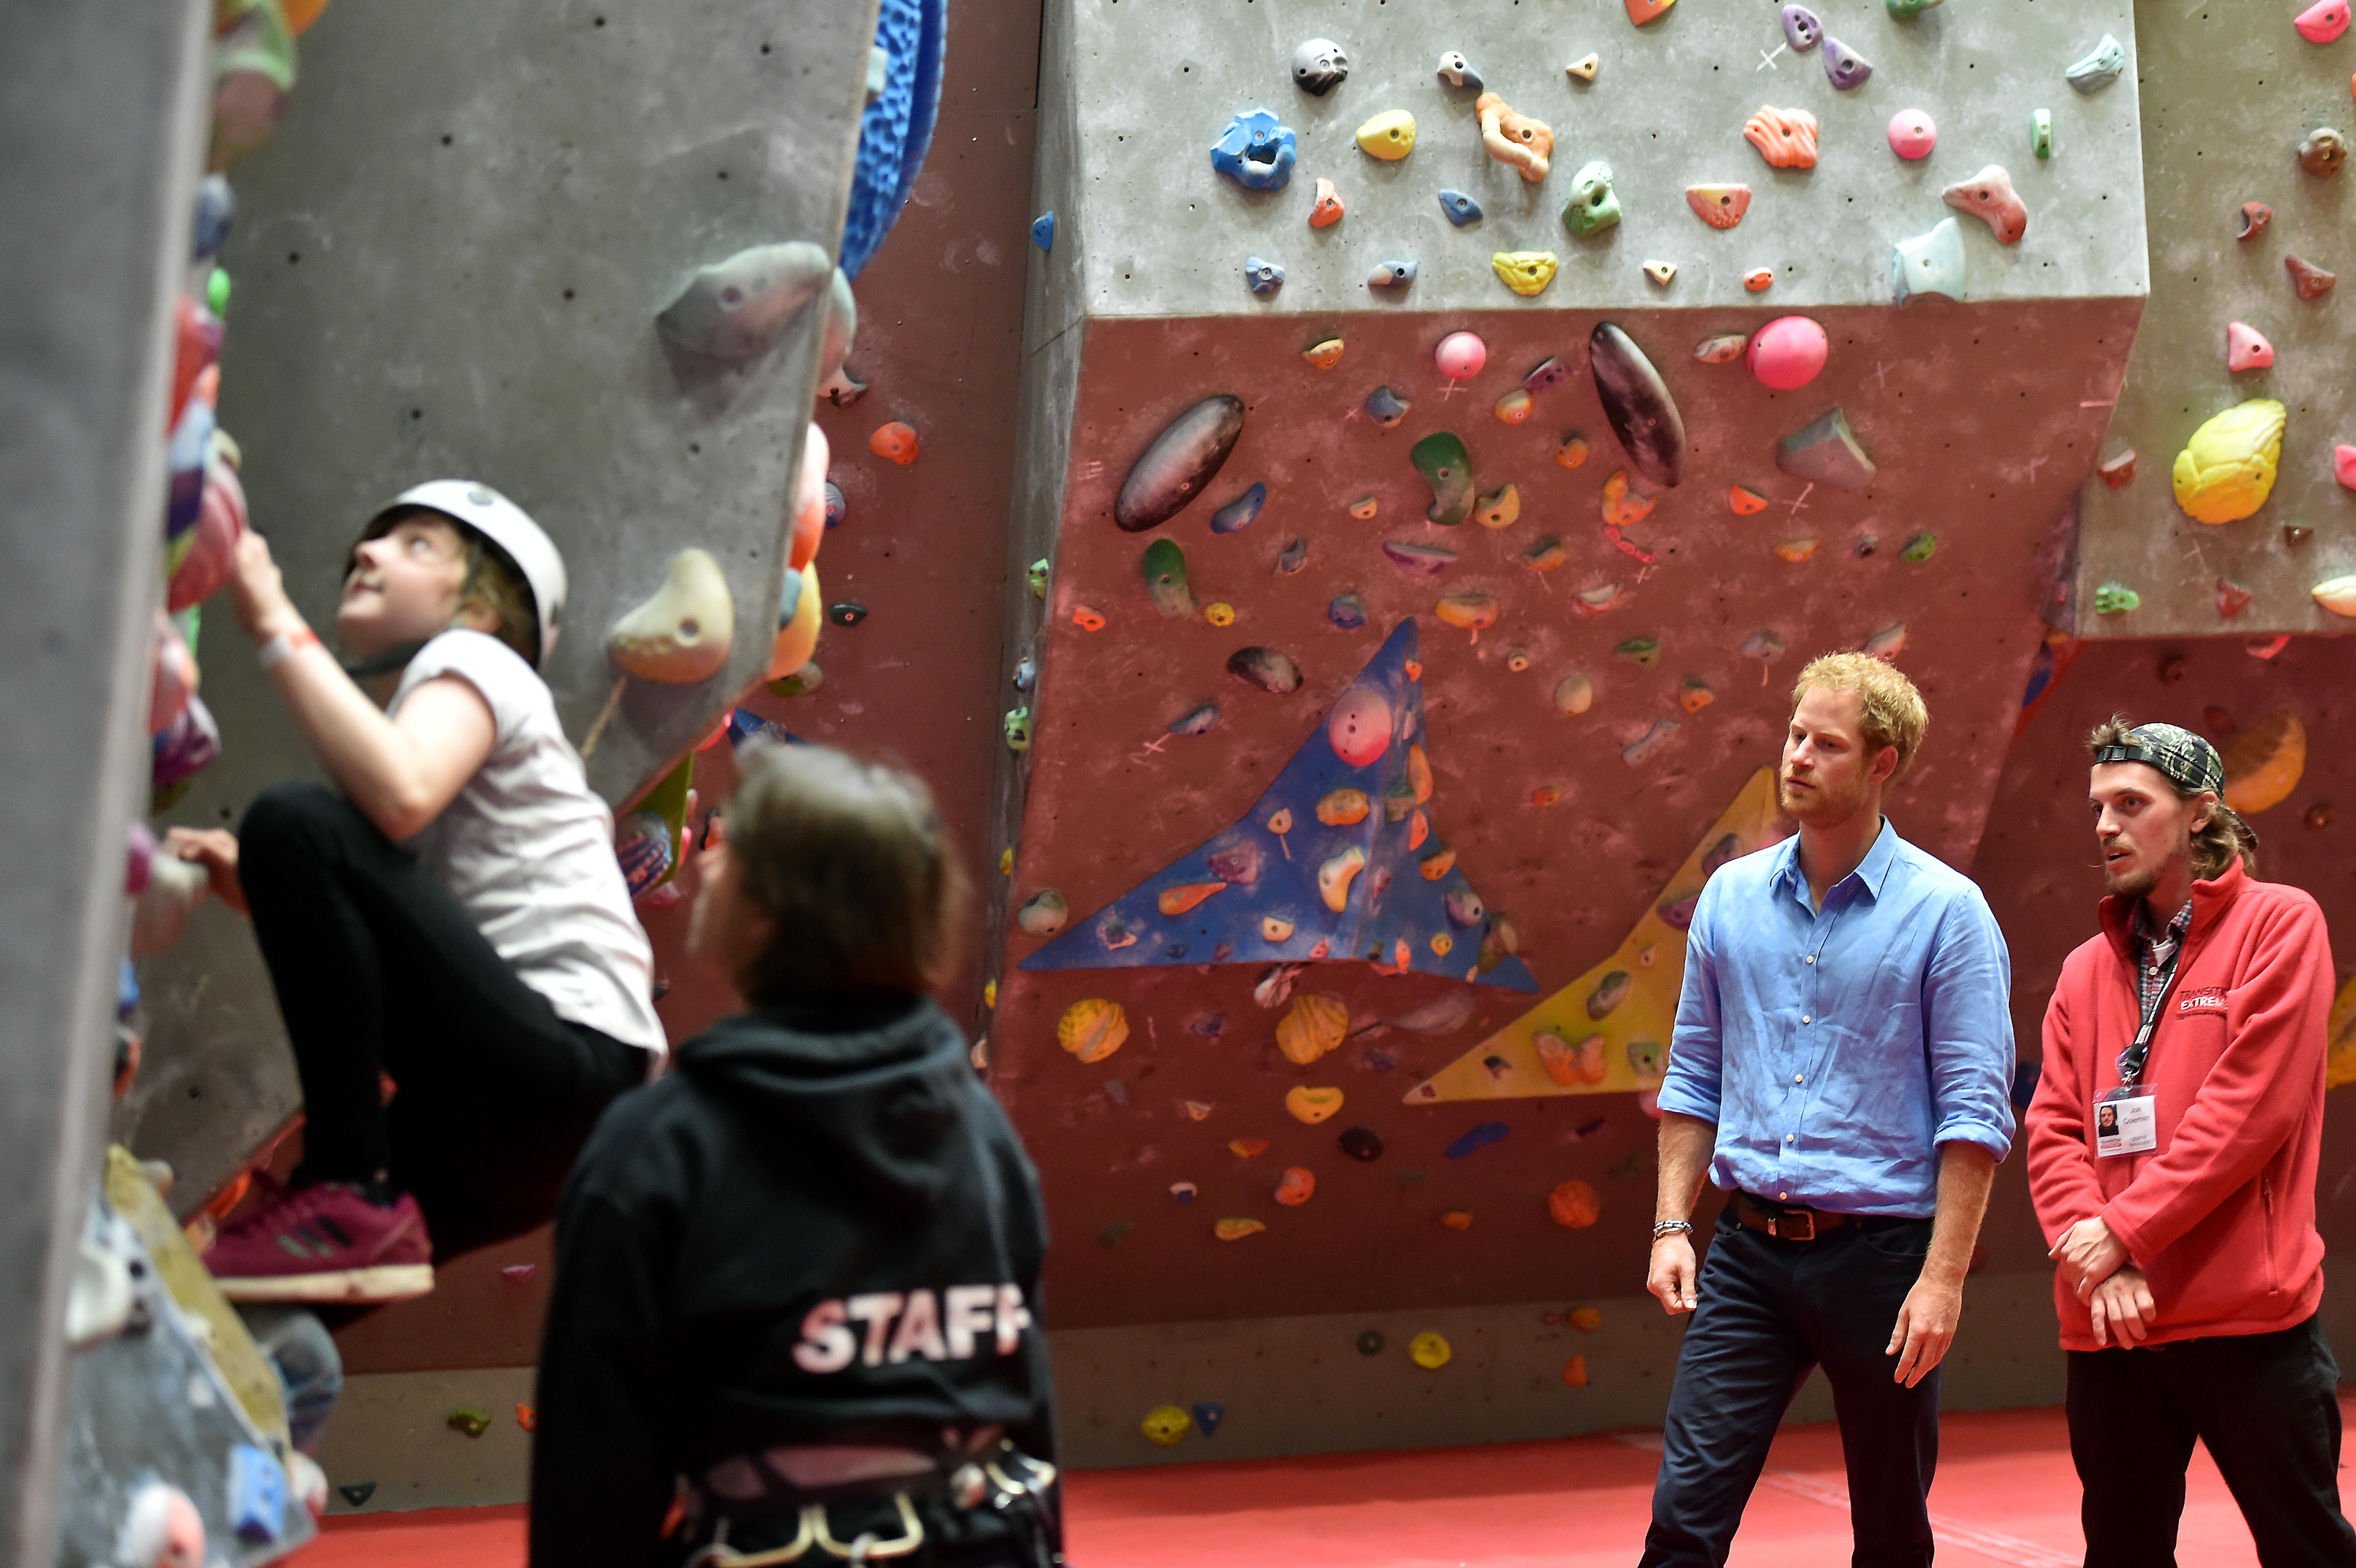 VIP: Below, Prince Harry with Joe Coleman. Above, Cllr Jill Wisely visits before the skatepark was finished.